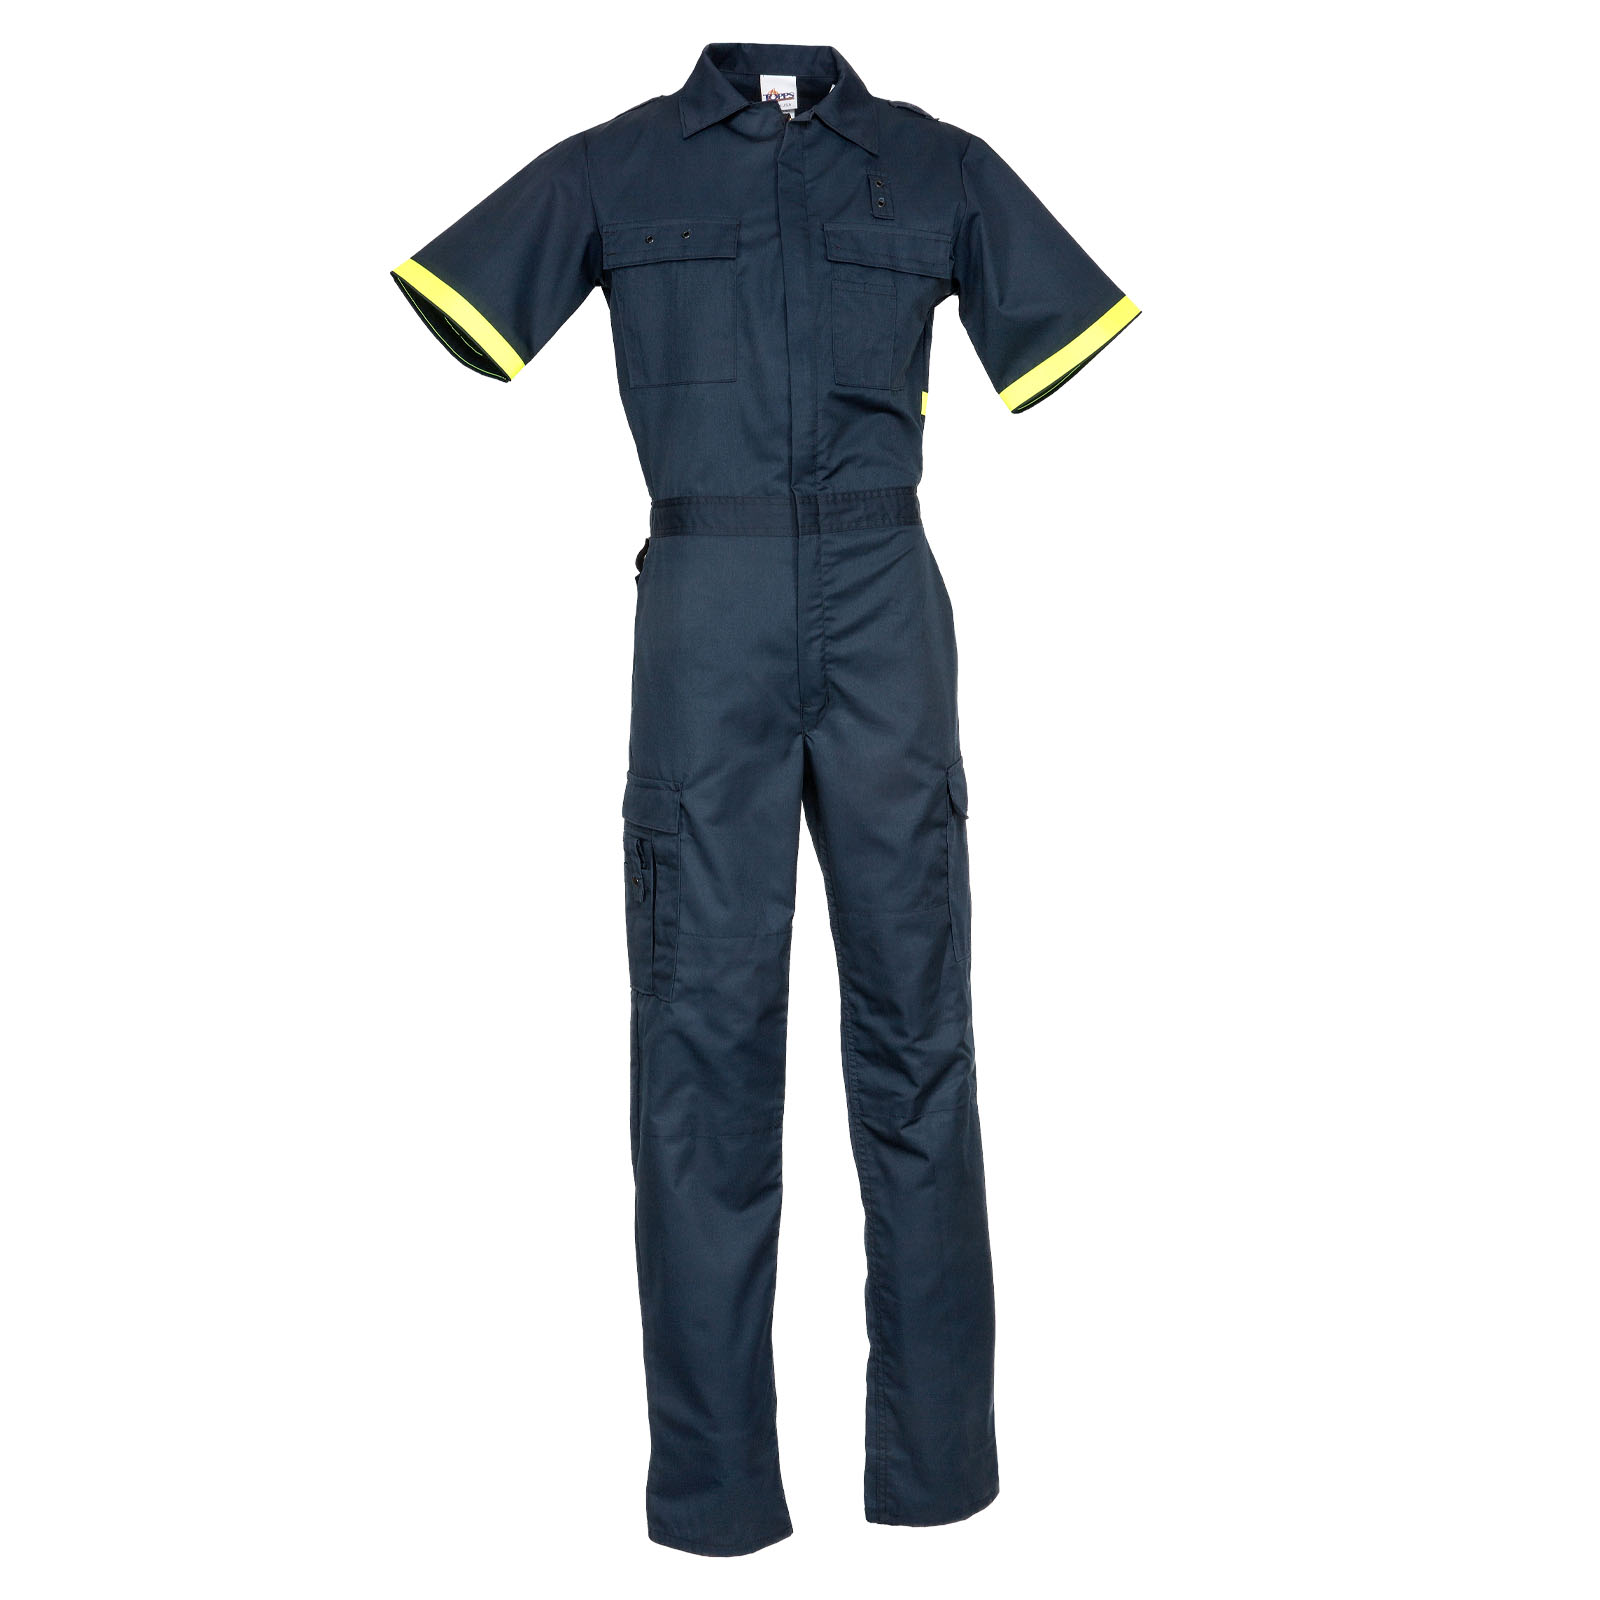 Public Safety One-Piece Suits 65/35 Short Sleeve Metro Style One-Piece Uniform Suit-TOPPS